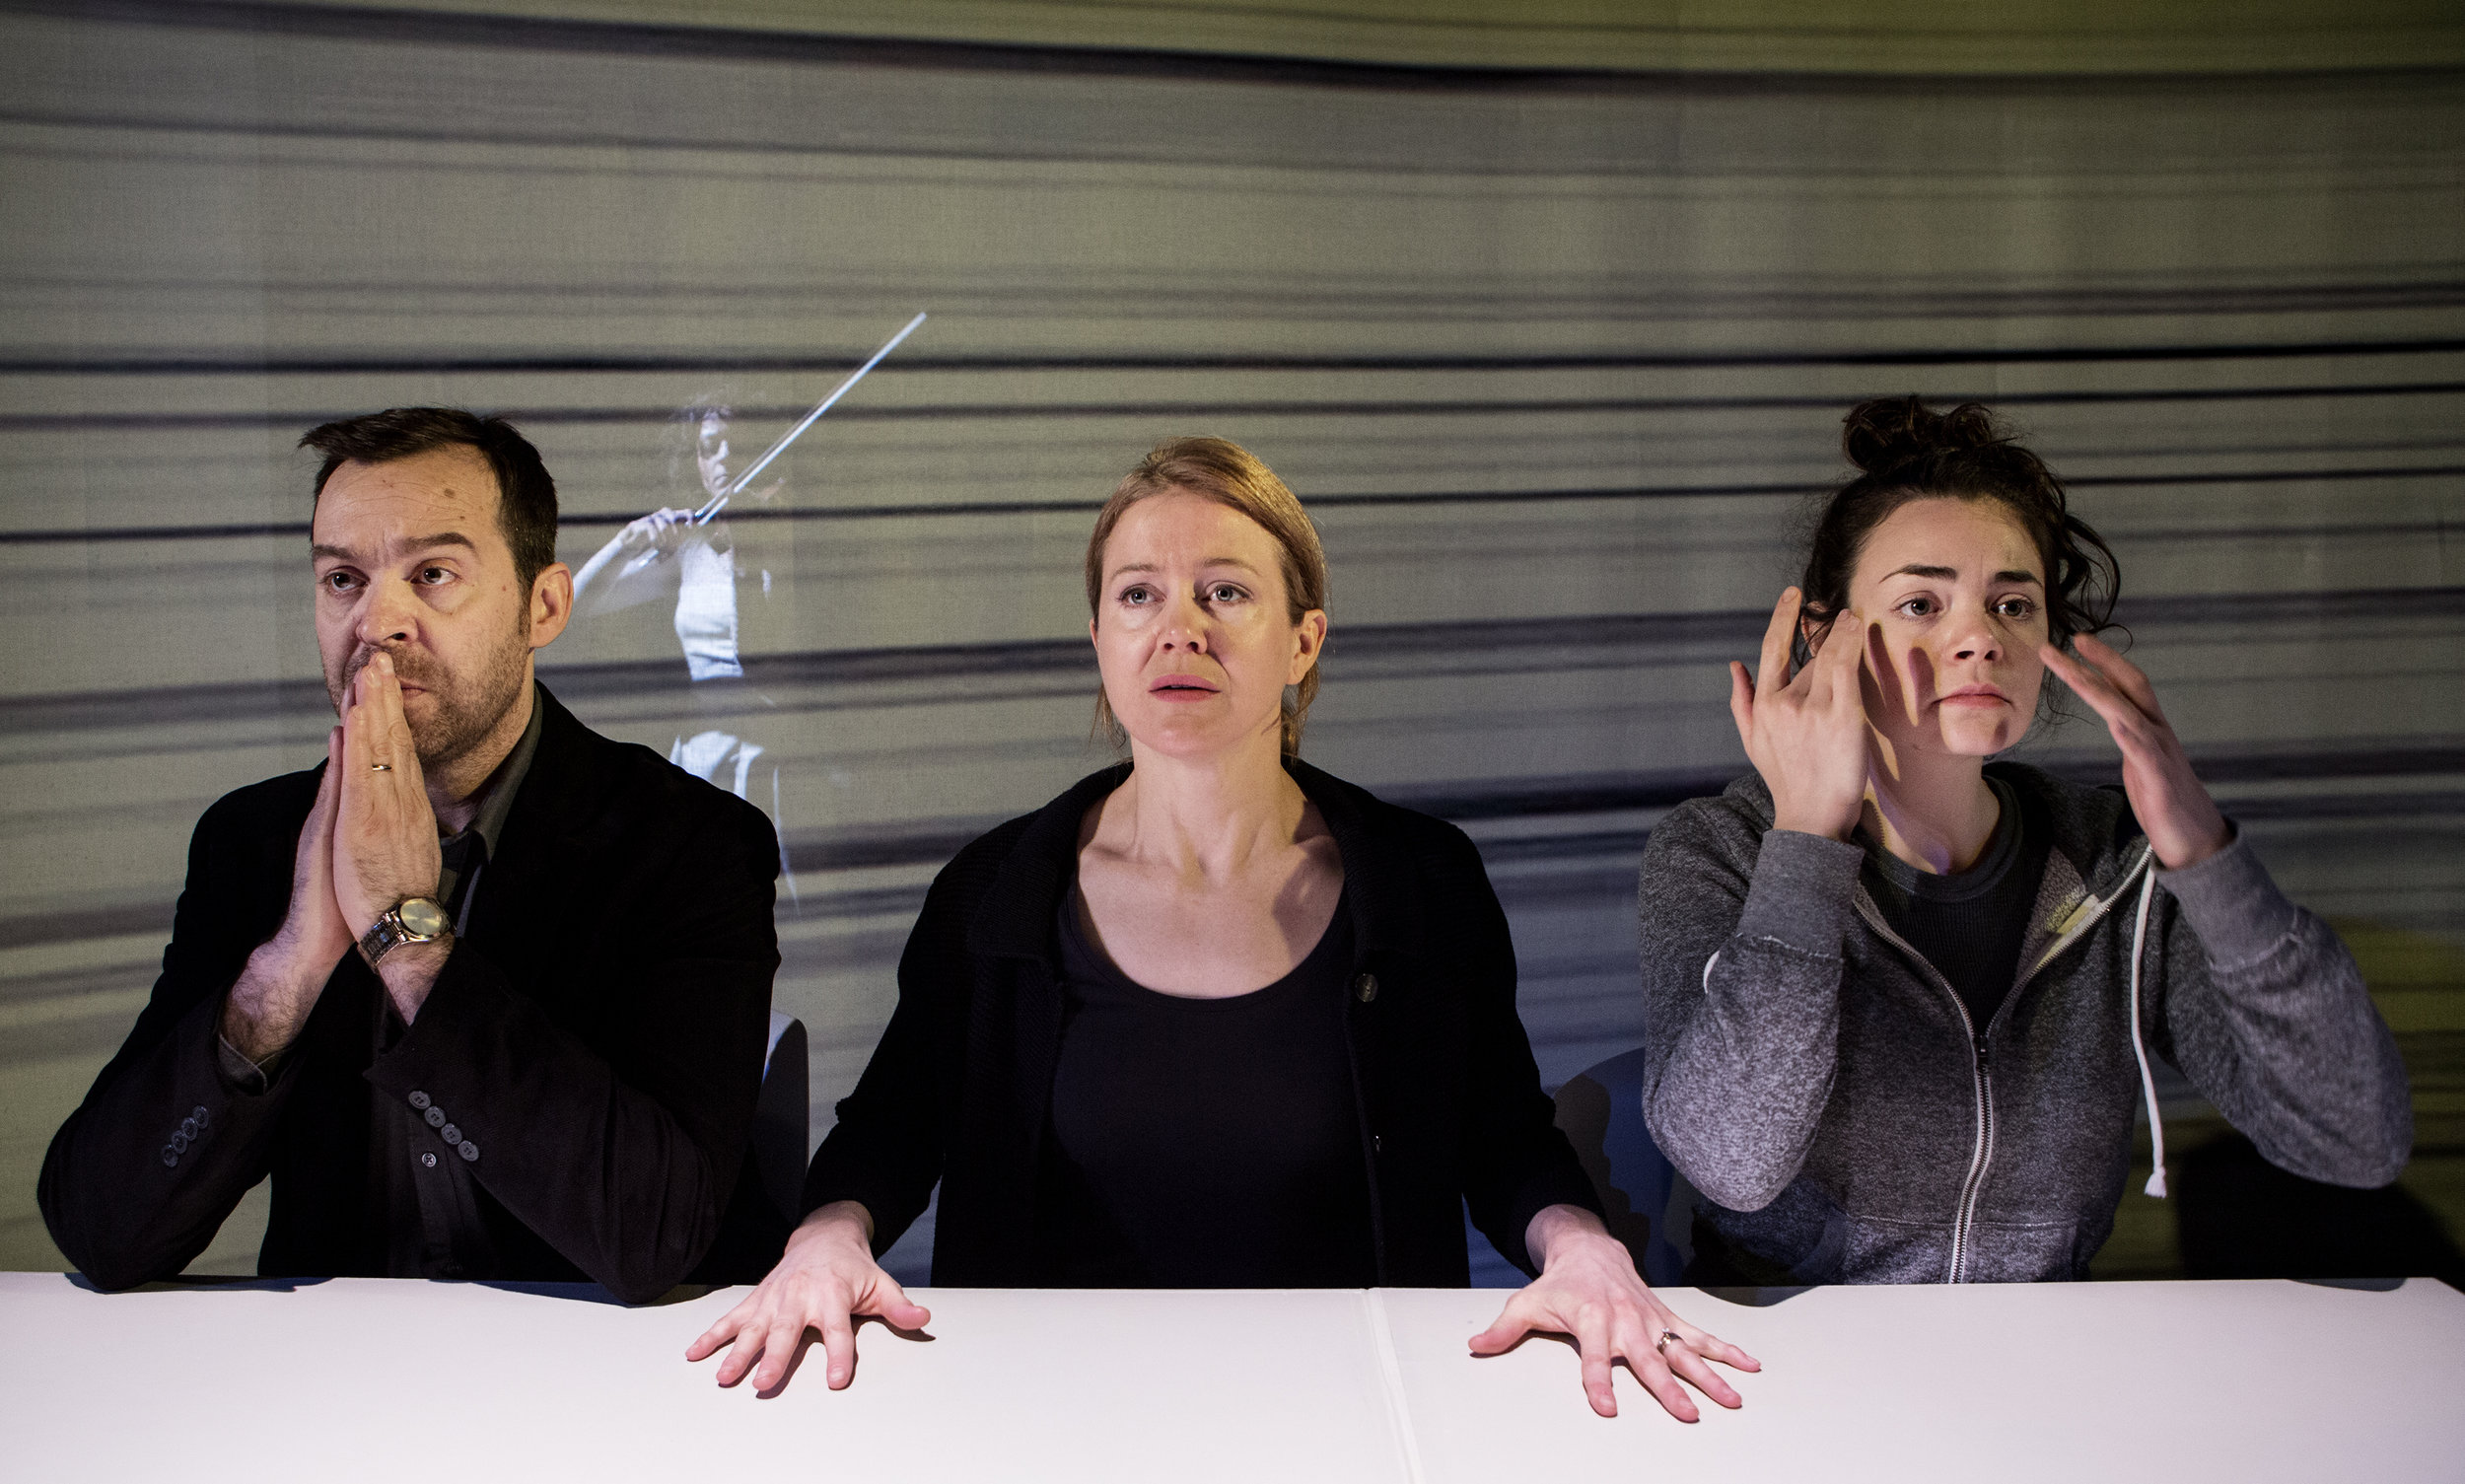 Amy Rutherford, Paul Braunstein, Haley McGee and Andréa Tyniec. Photography by Cylla von Tiedemann